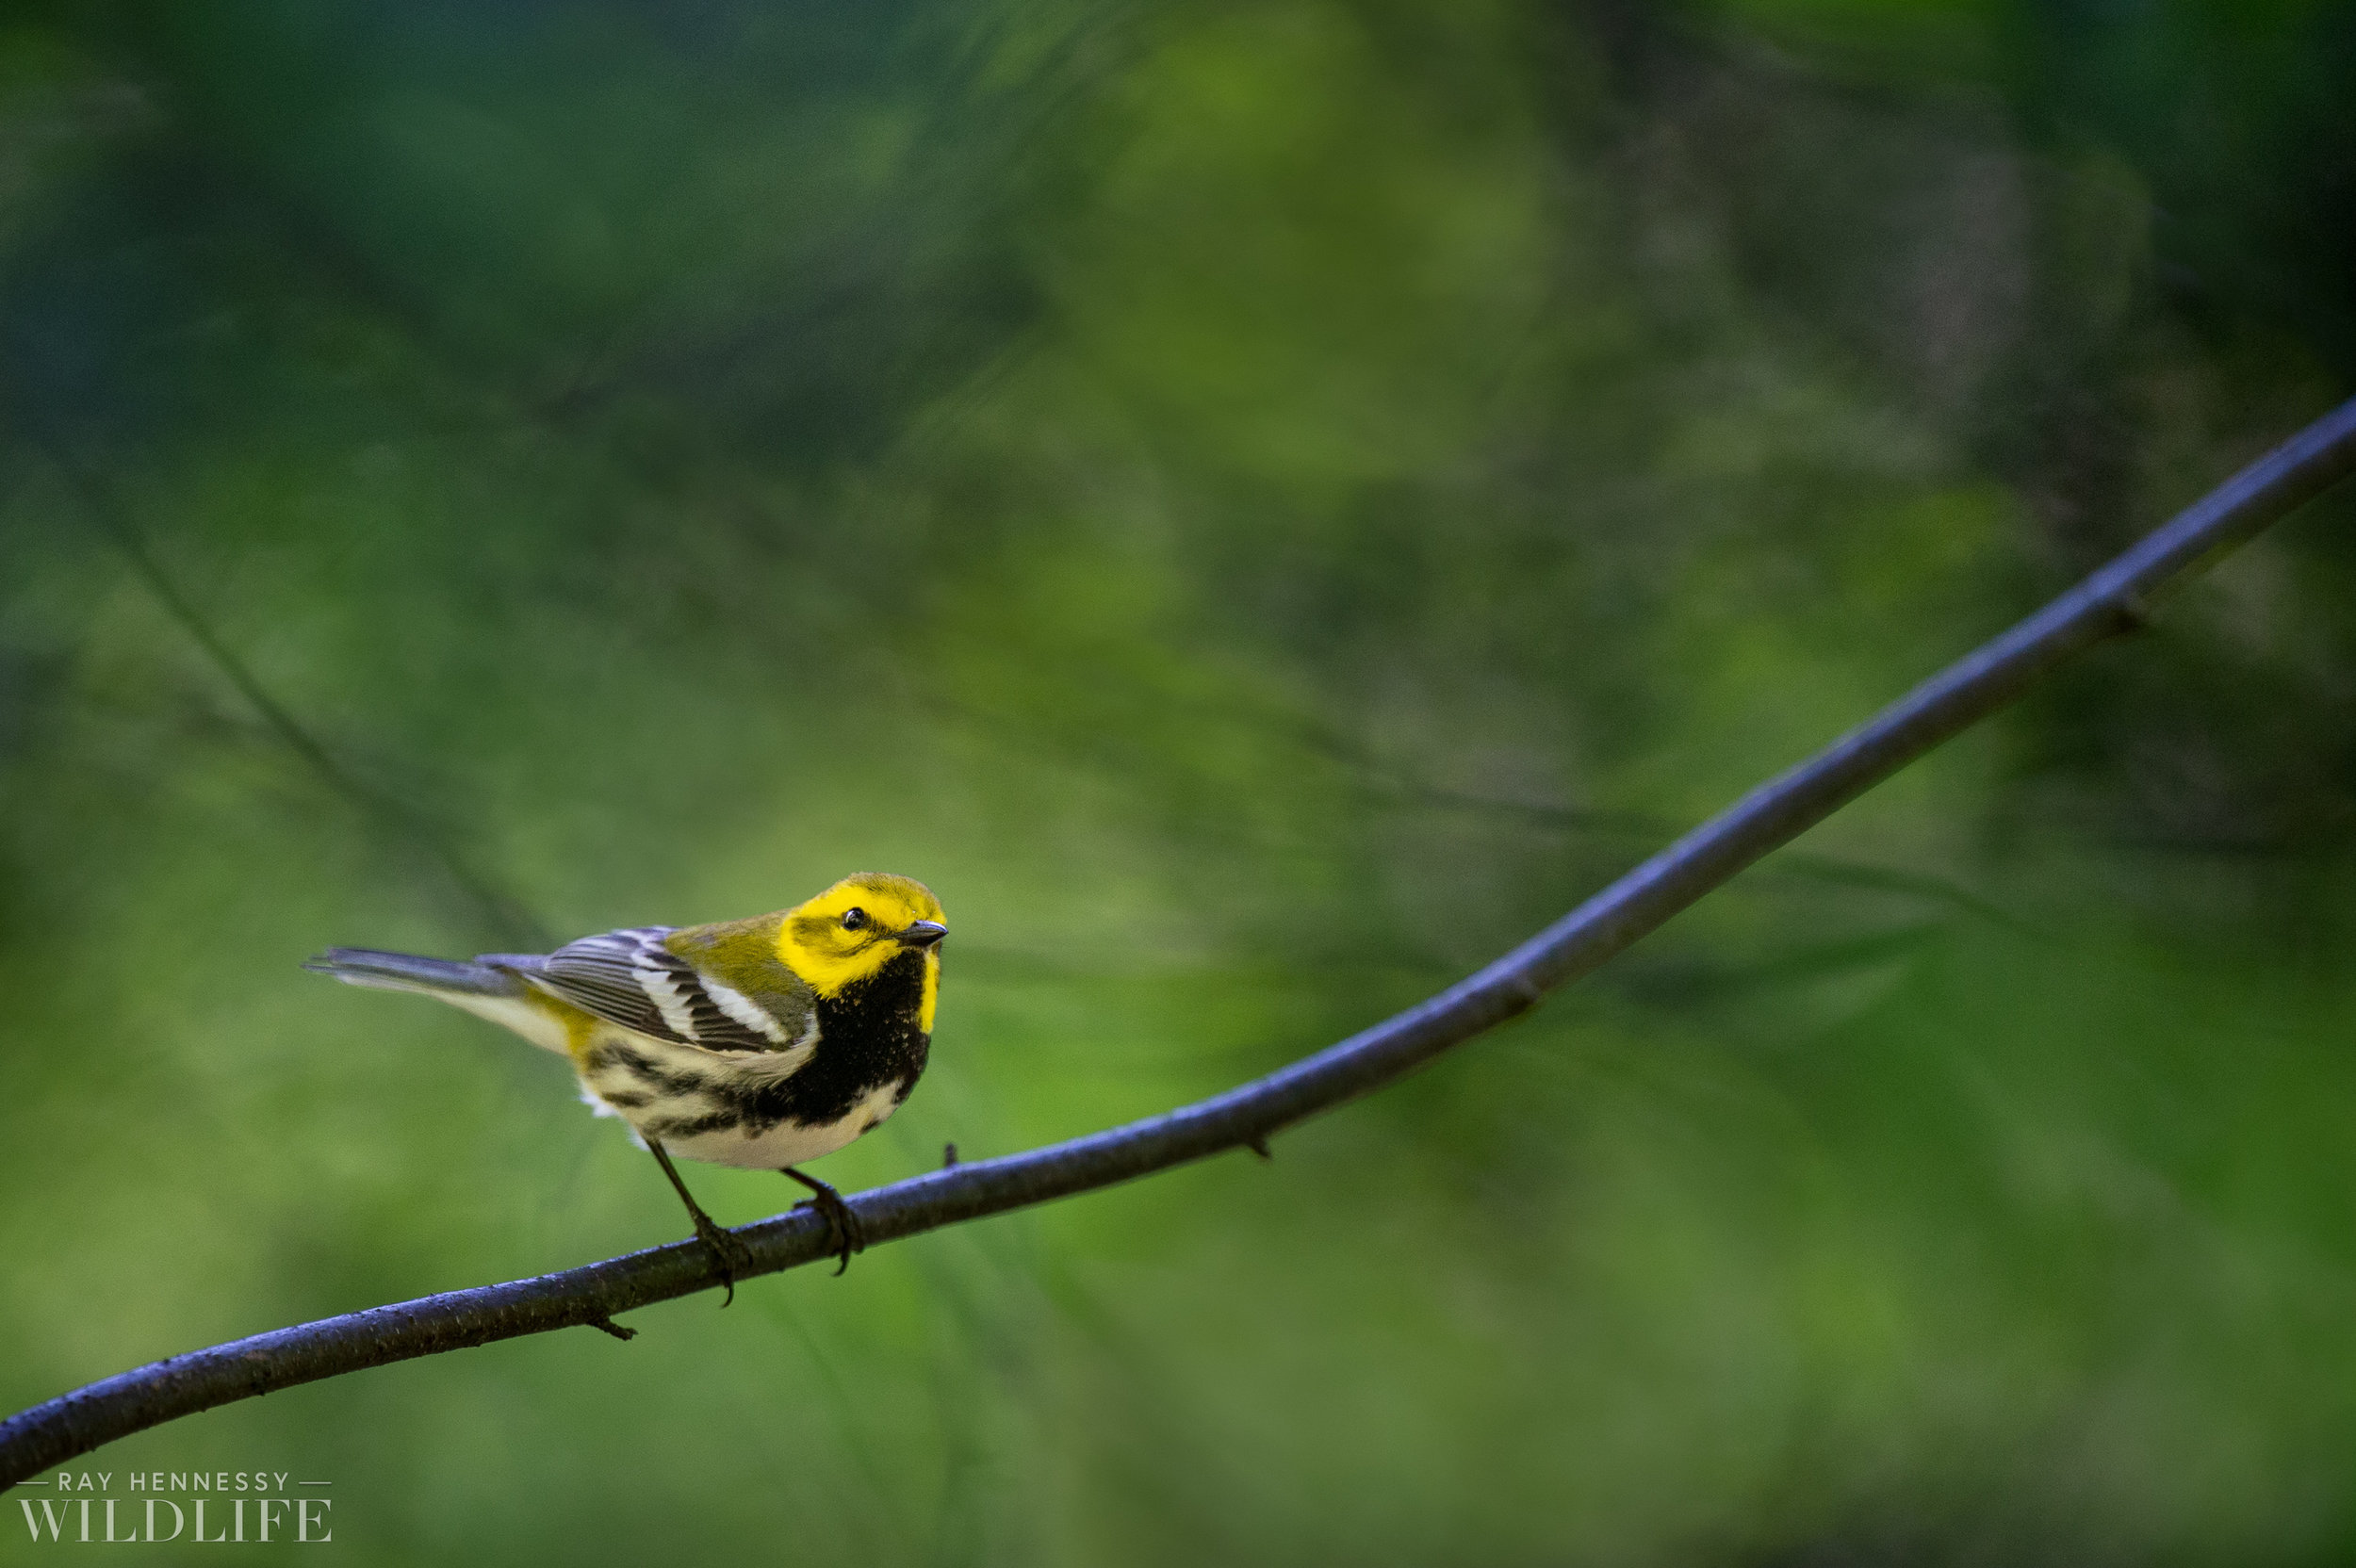 001_nothern-new-jersey-warblers.jpg